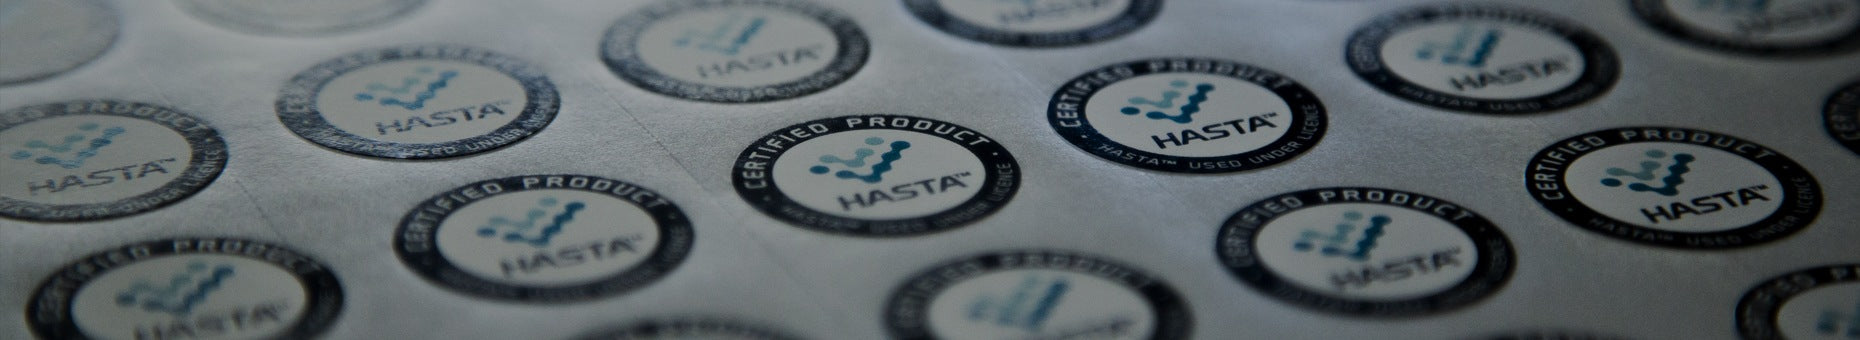 HASTA Certified Products